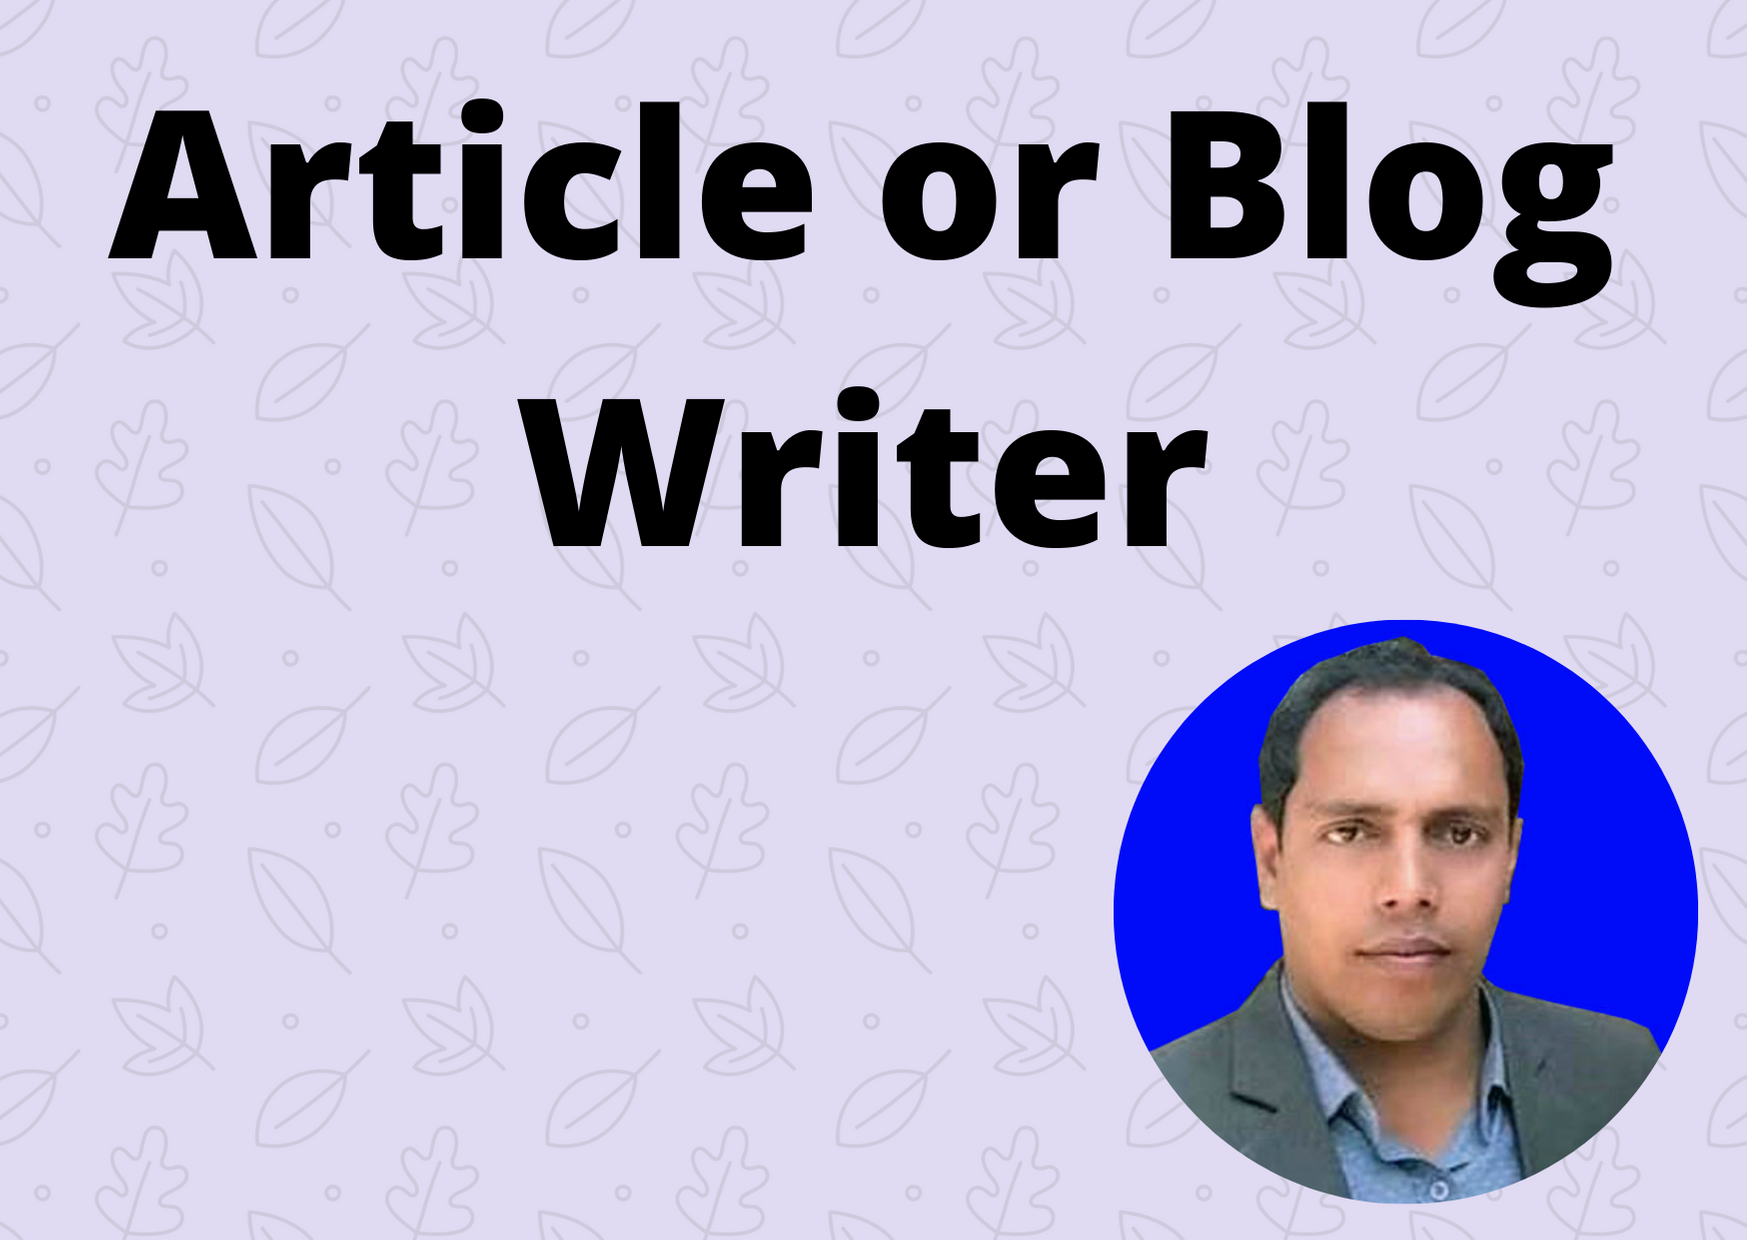 I will write an article or blog on select topics